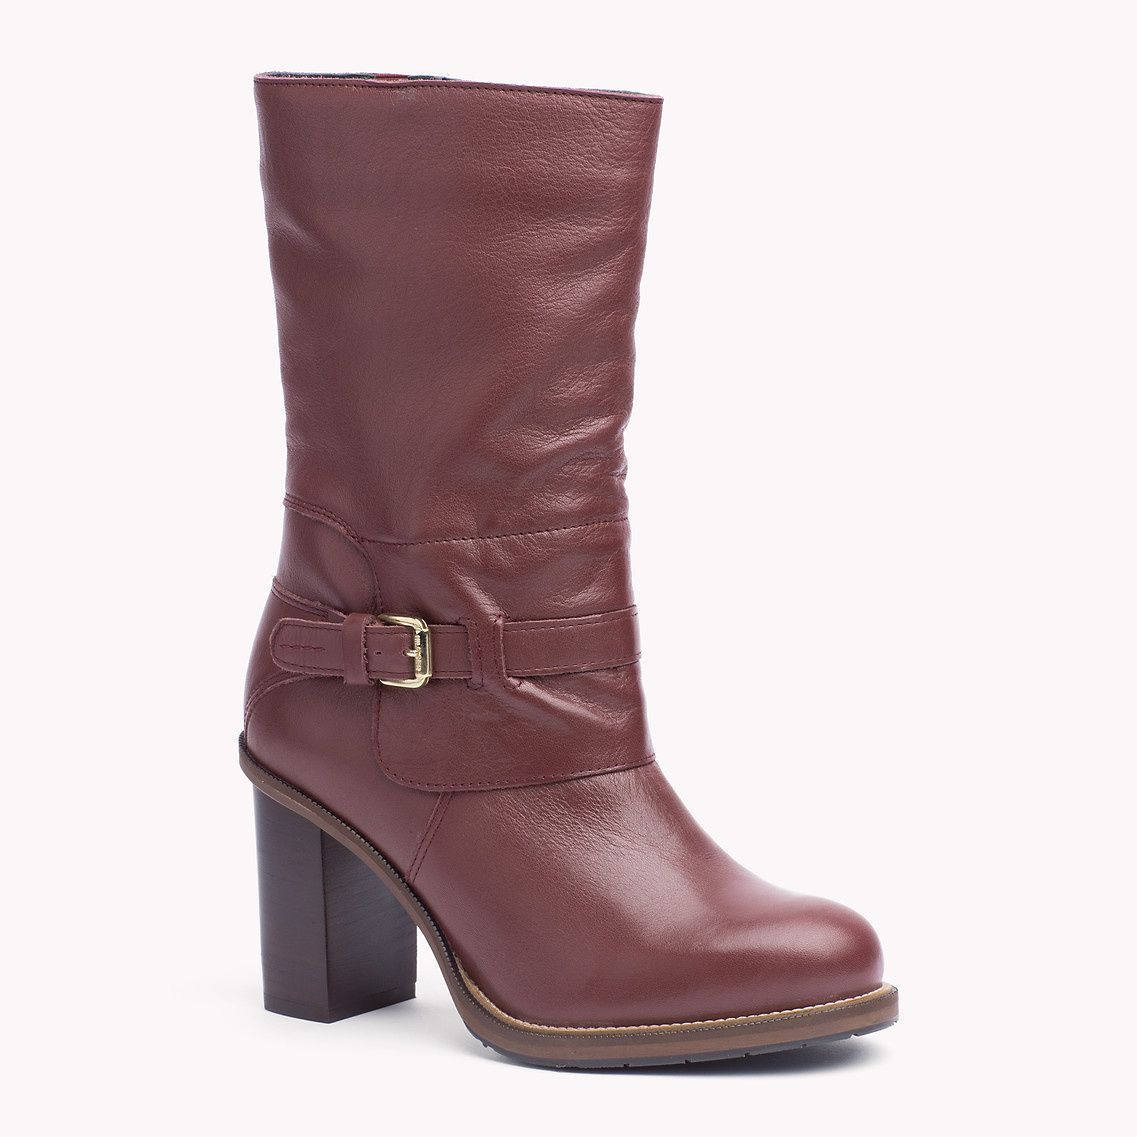 Tommy Hilfiger Hillary Boot. Part of our Tommy Hilfiger women's footwear  collection